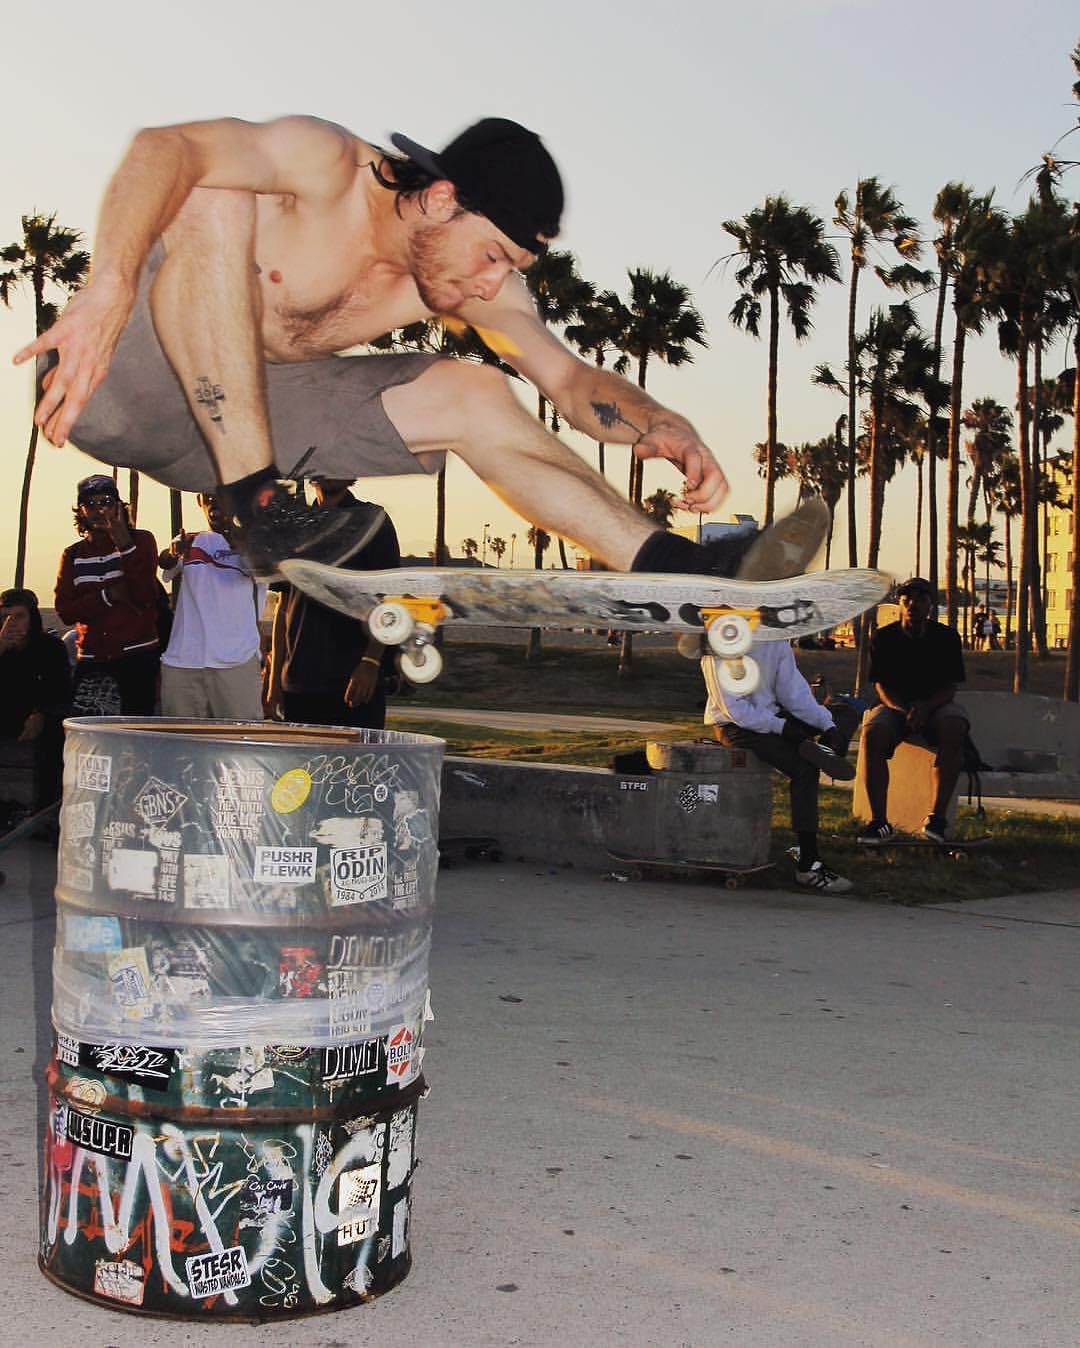 @4n_sweatgod can Ollie higher than your momma